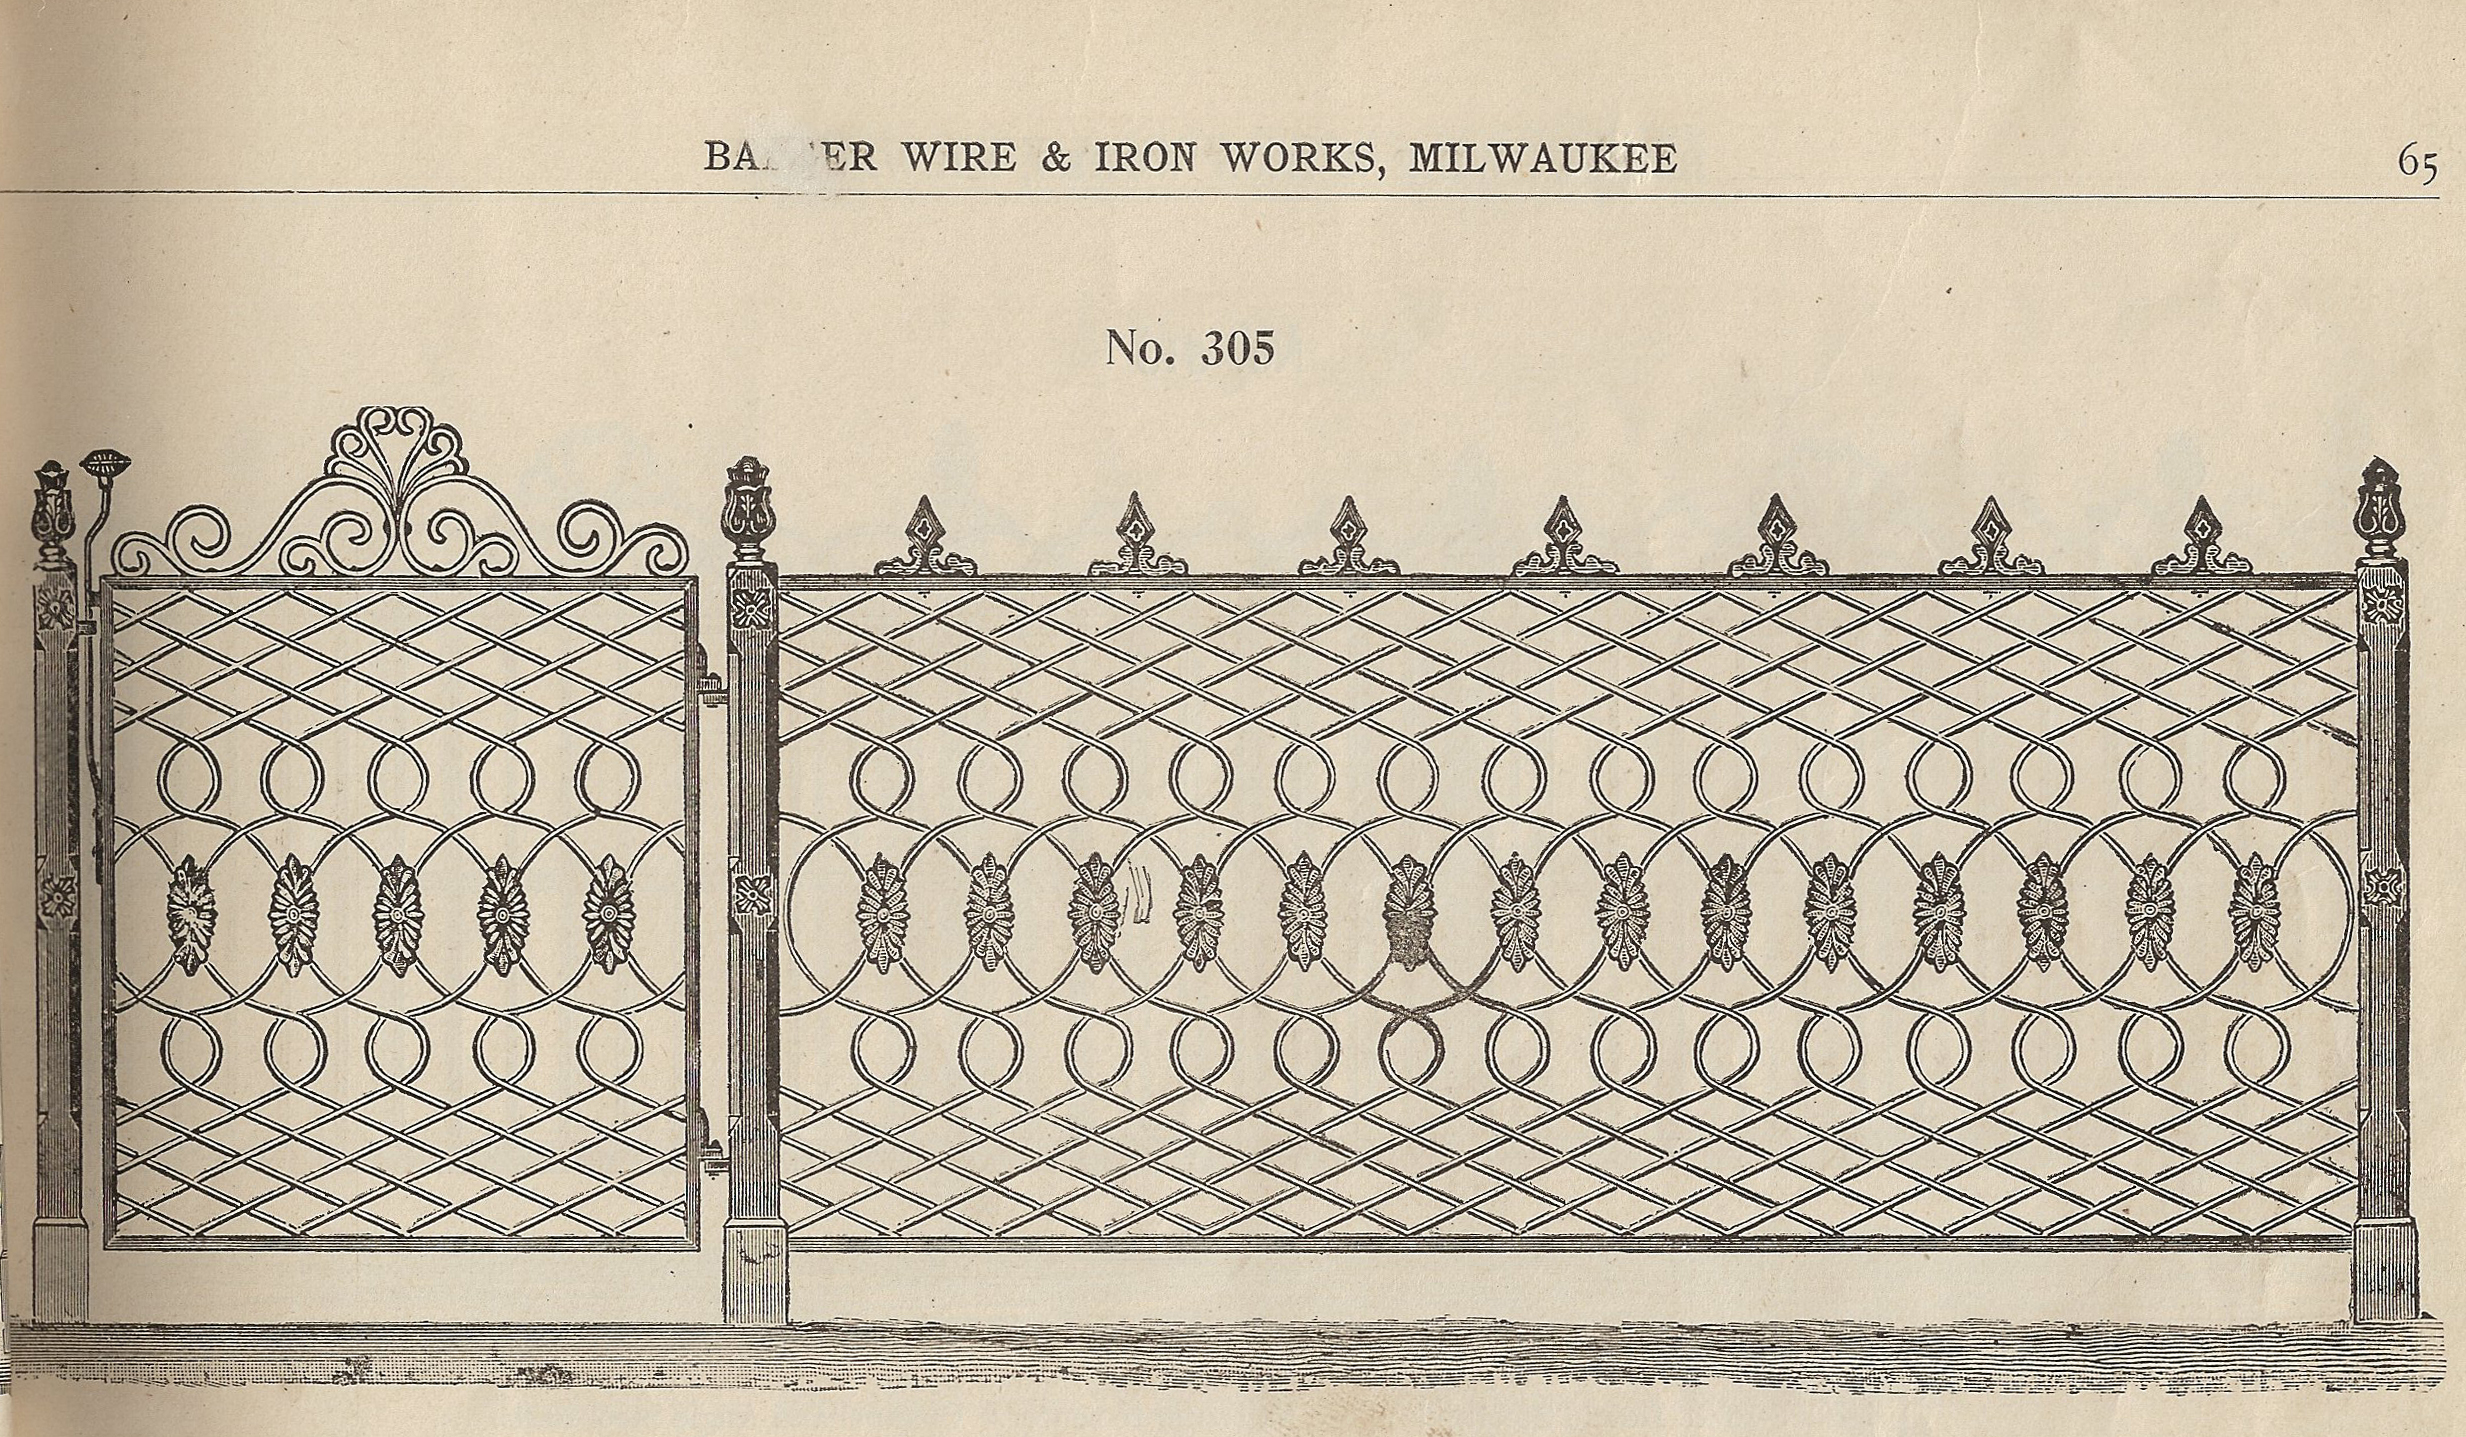 Banker Wire created a unique die to duplicate the original ironwork's slightly irregular decorative crimping patter